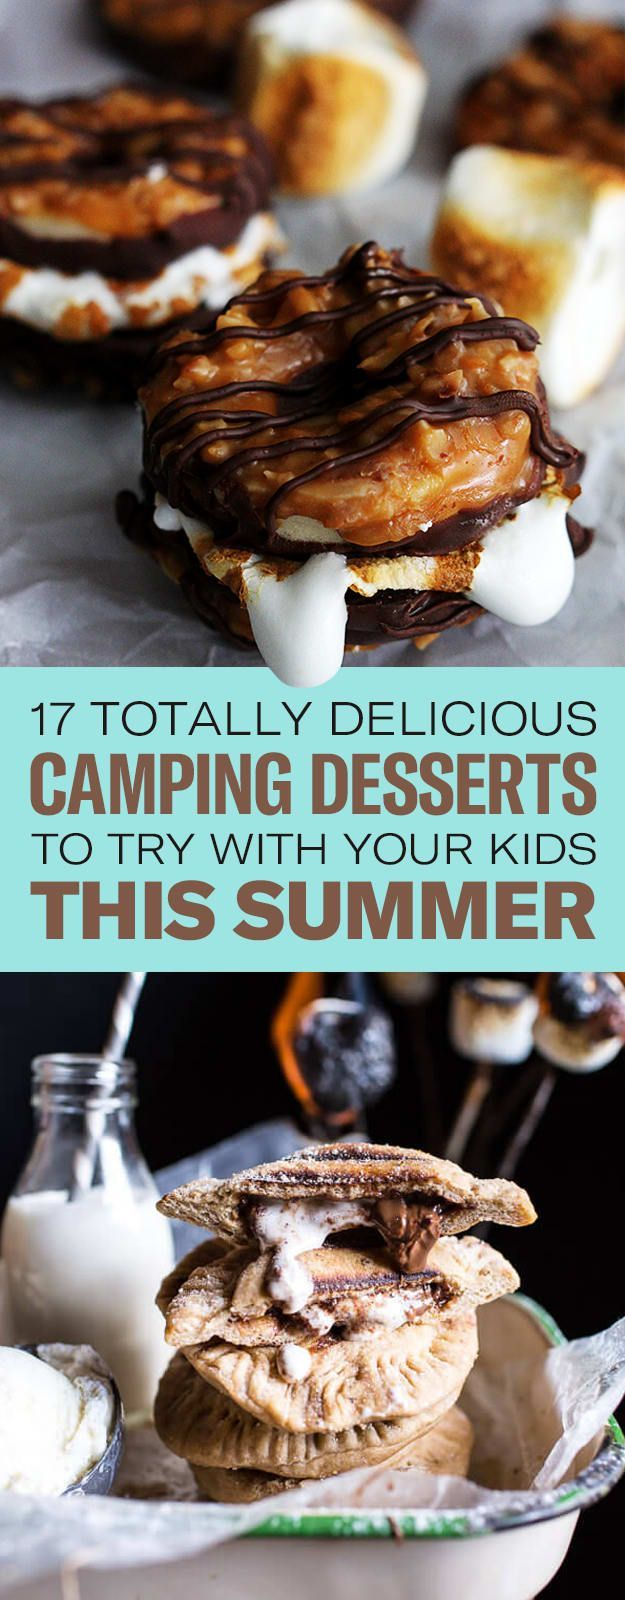 "17 Totally Delicious Camping Desserts That'll Make Your Kids Say, ""Let's…"